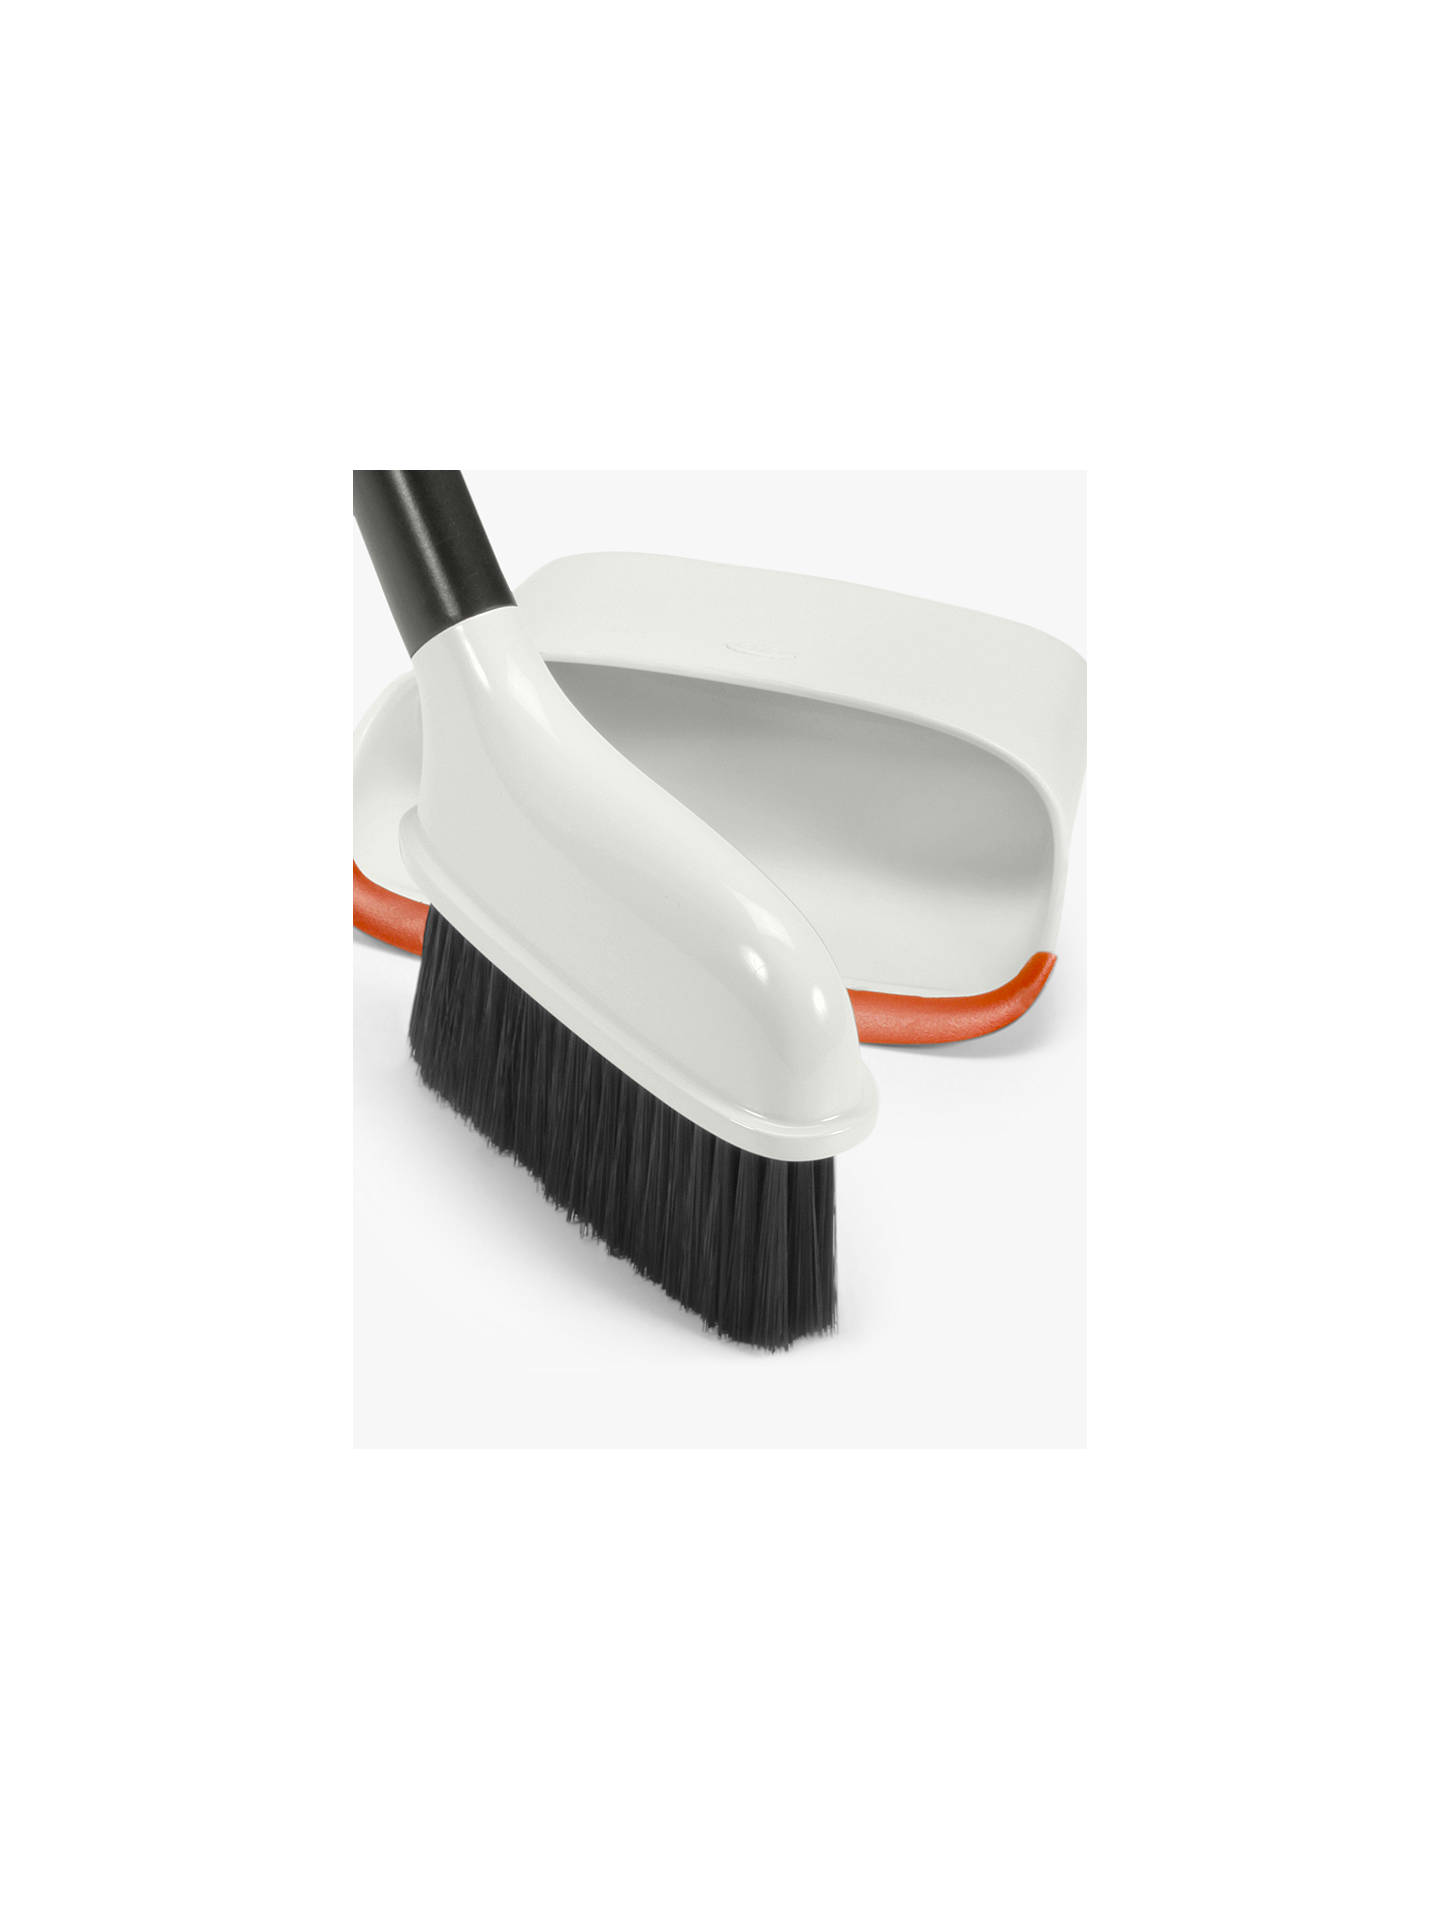 BuyOXO Good Grips Compact Dustpan and Brush Set Online at johnlewis.com